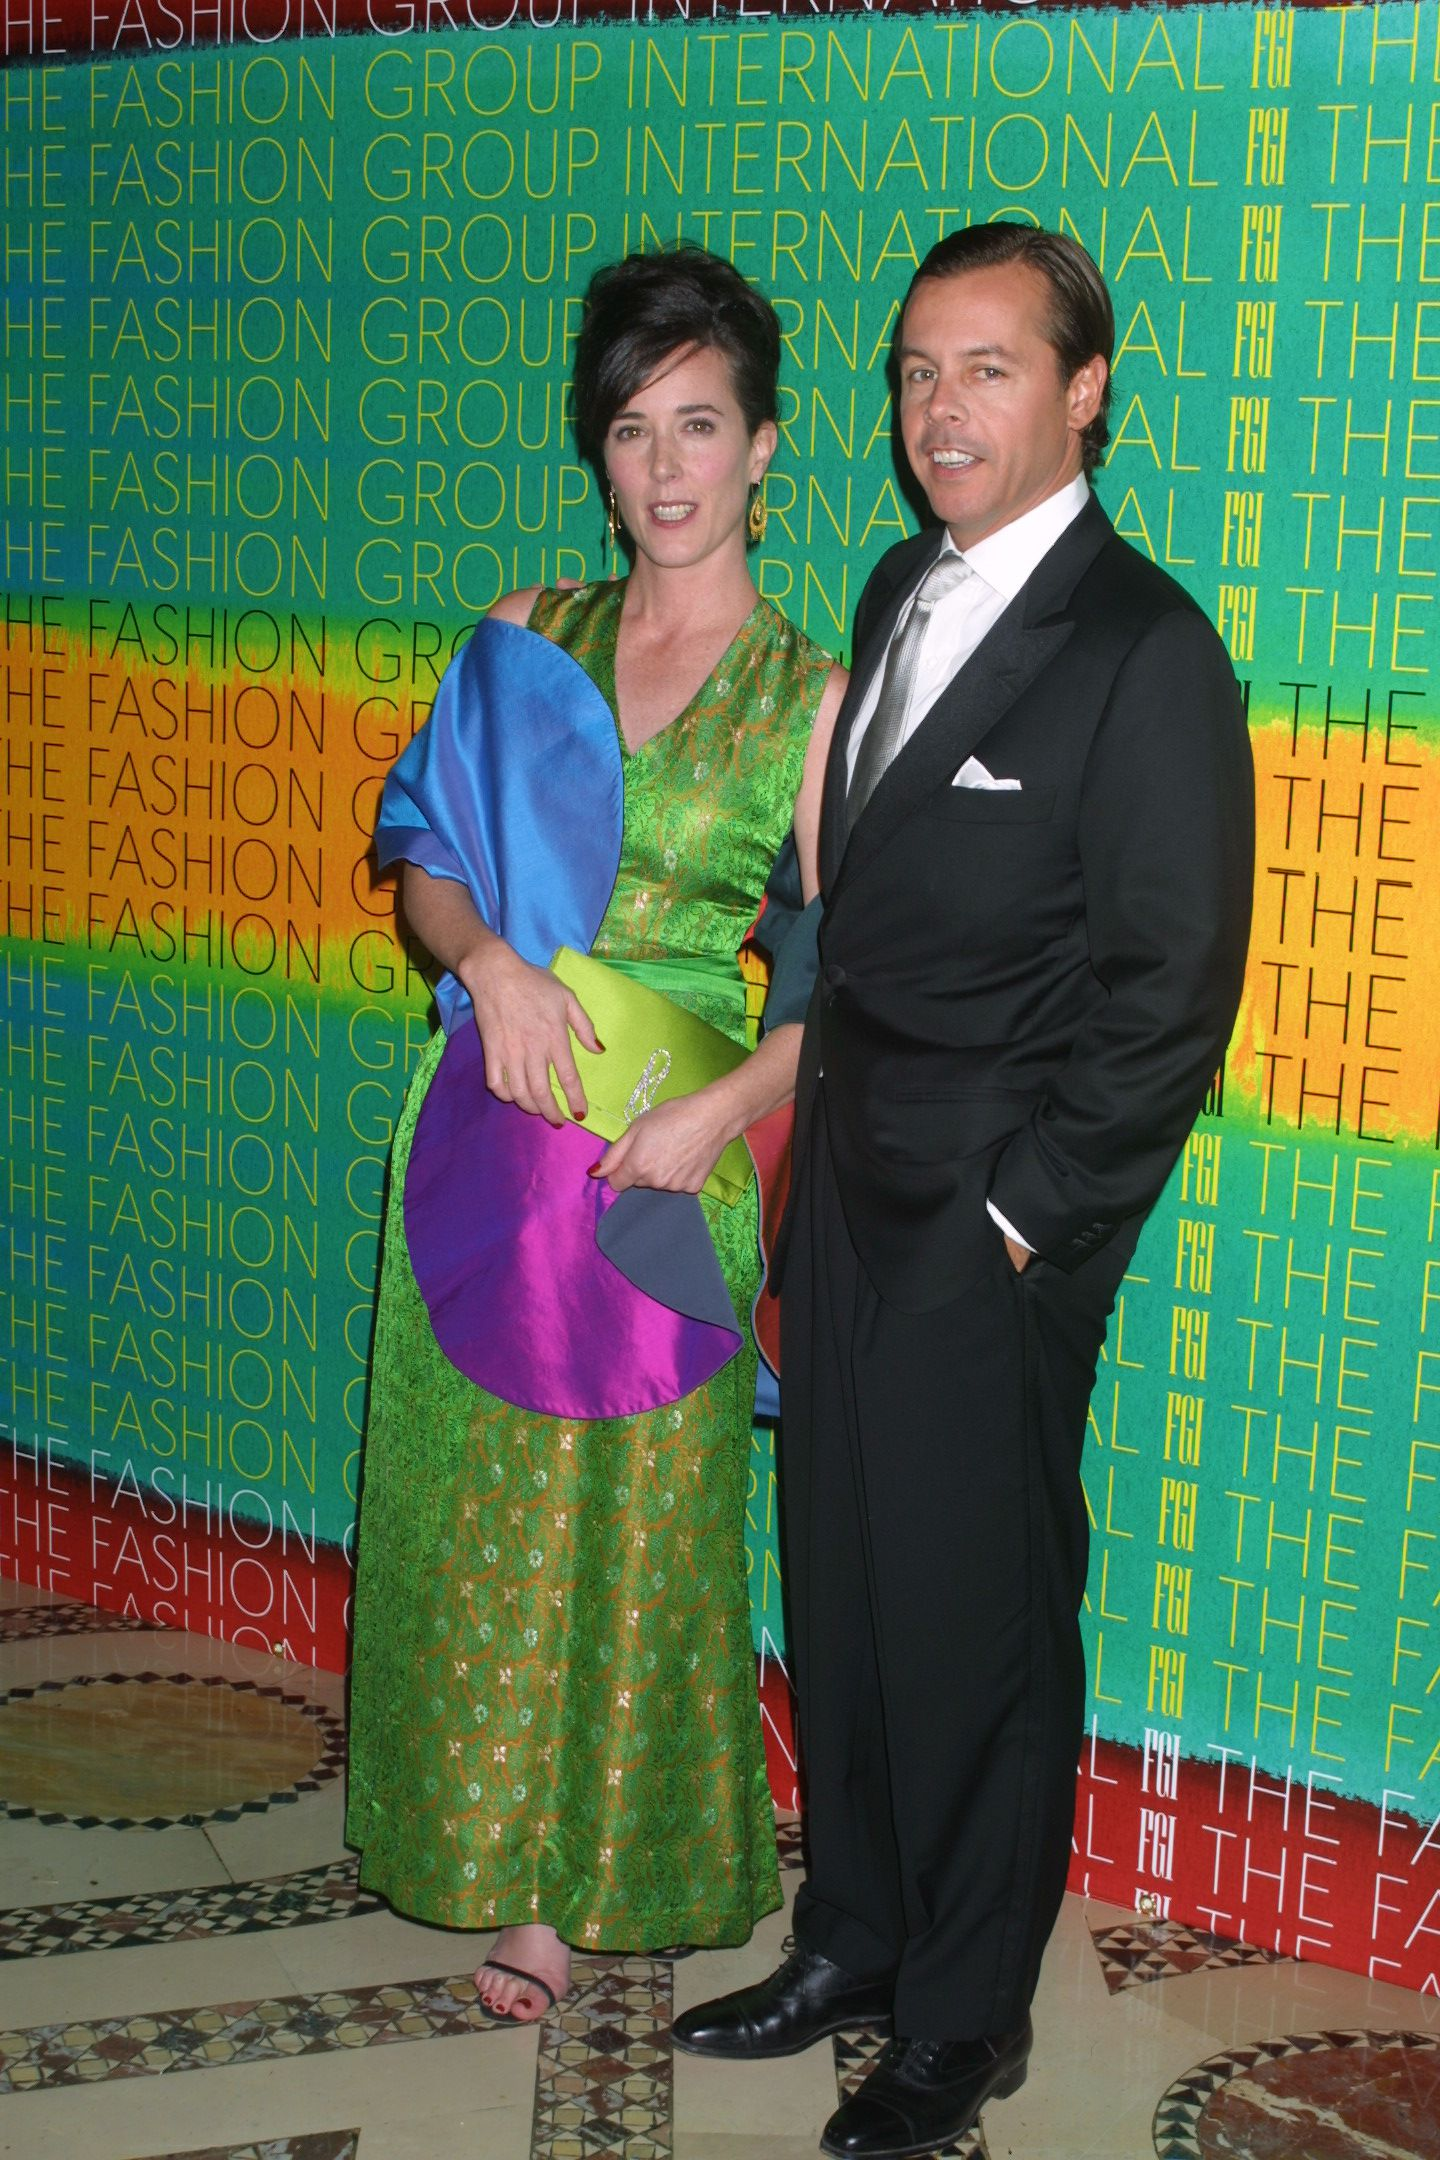 <div class='meta'><div class='origin-logo' data-origin='none'></div><span class='caption-text' data-credit='Matt Baron/BEI/REX/Shutterstock'>Kate Spade and husband at the 18th Annual Night of Stars Fashion Group International Cipriani in 2001.</span></div>